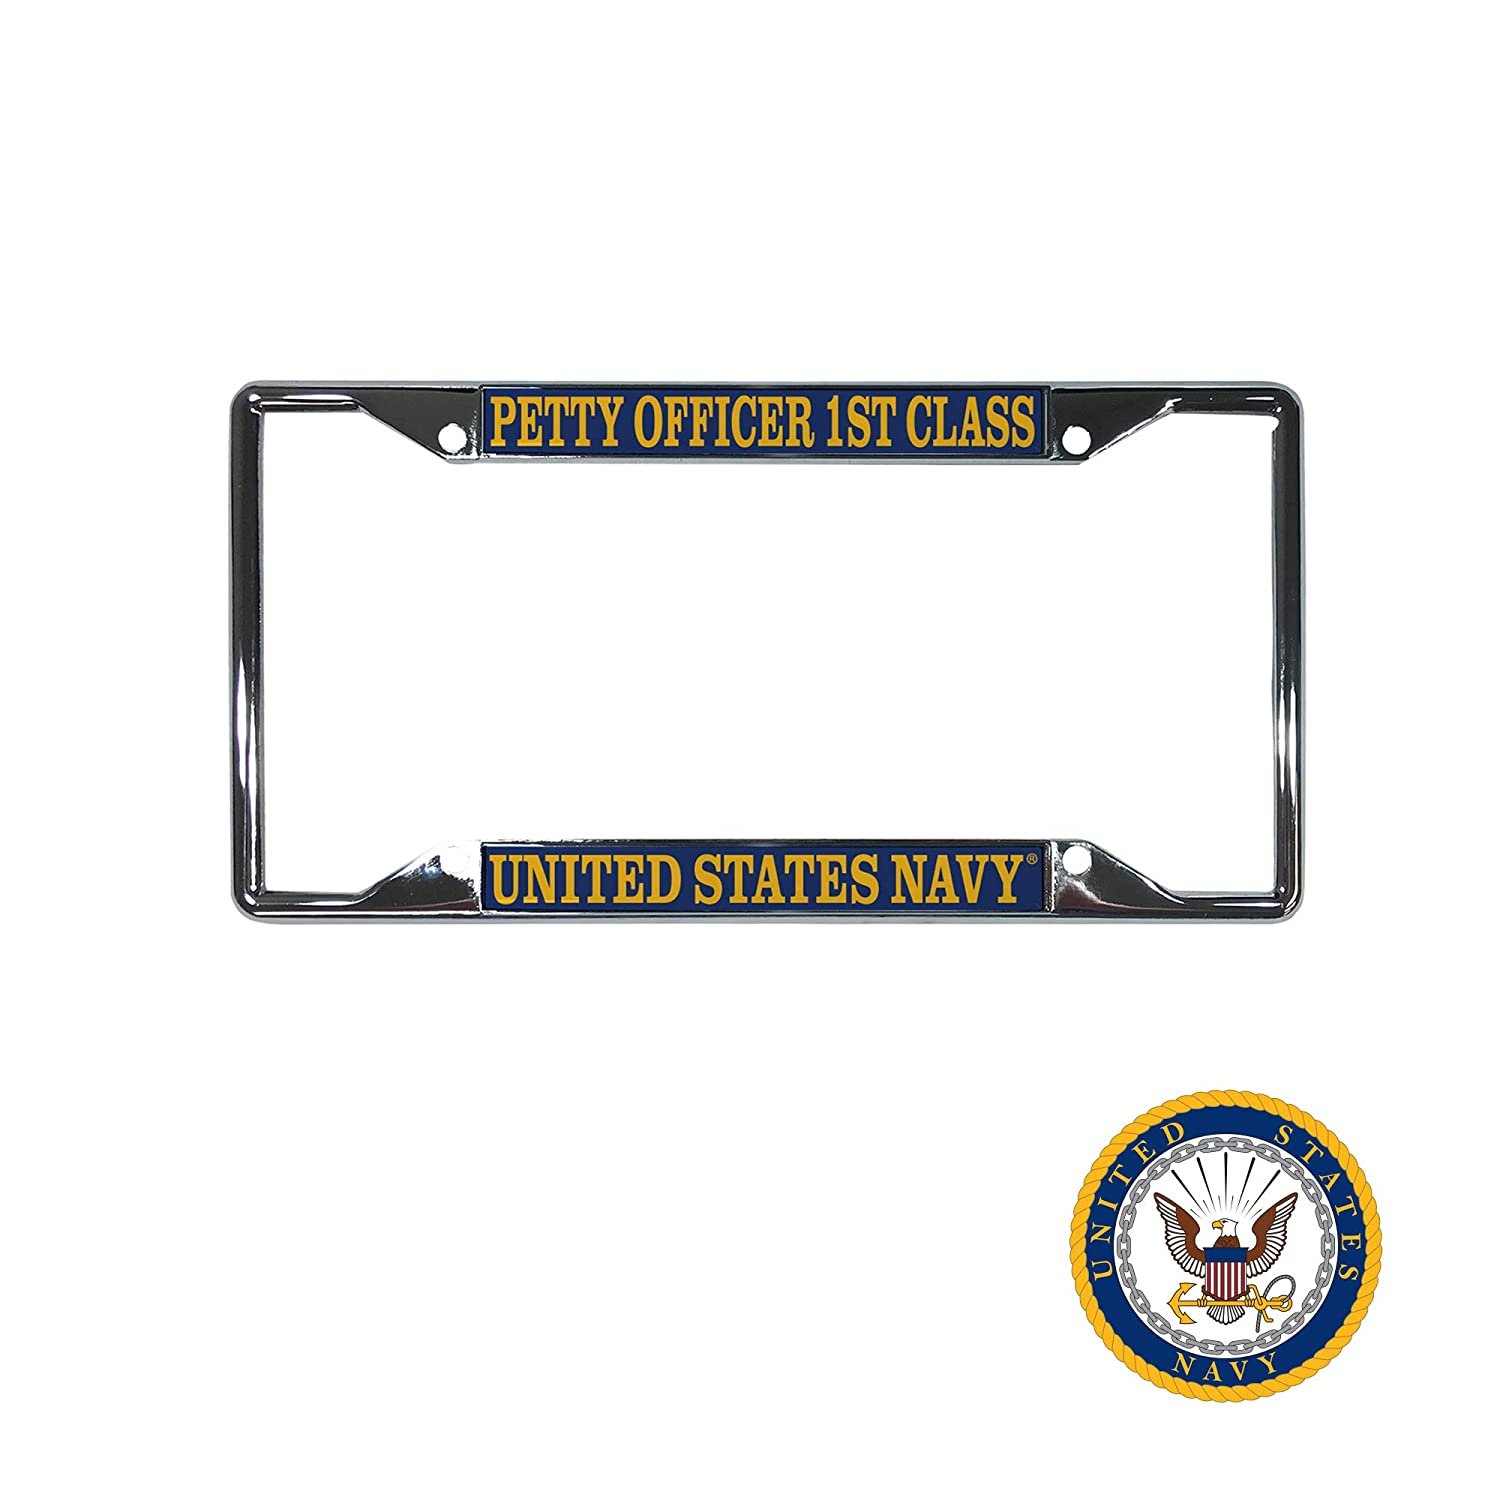 Desert Cactus US Navy Petty Officer 1st Class Enlisted Grades License Plate Frame for Front Back of Car Officially Licensed United States